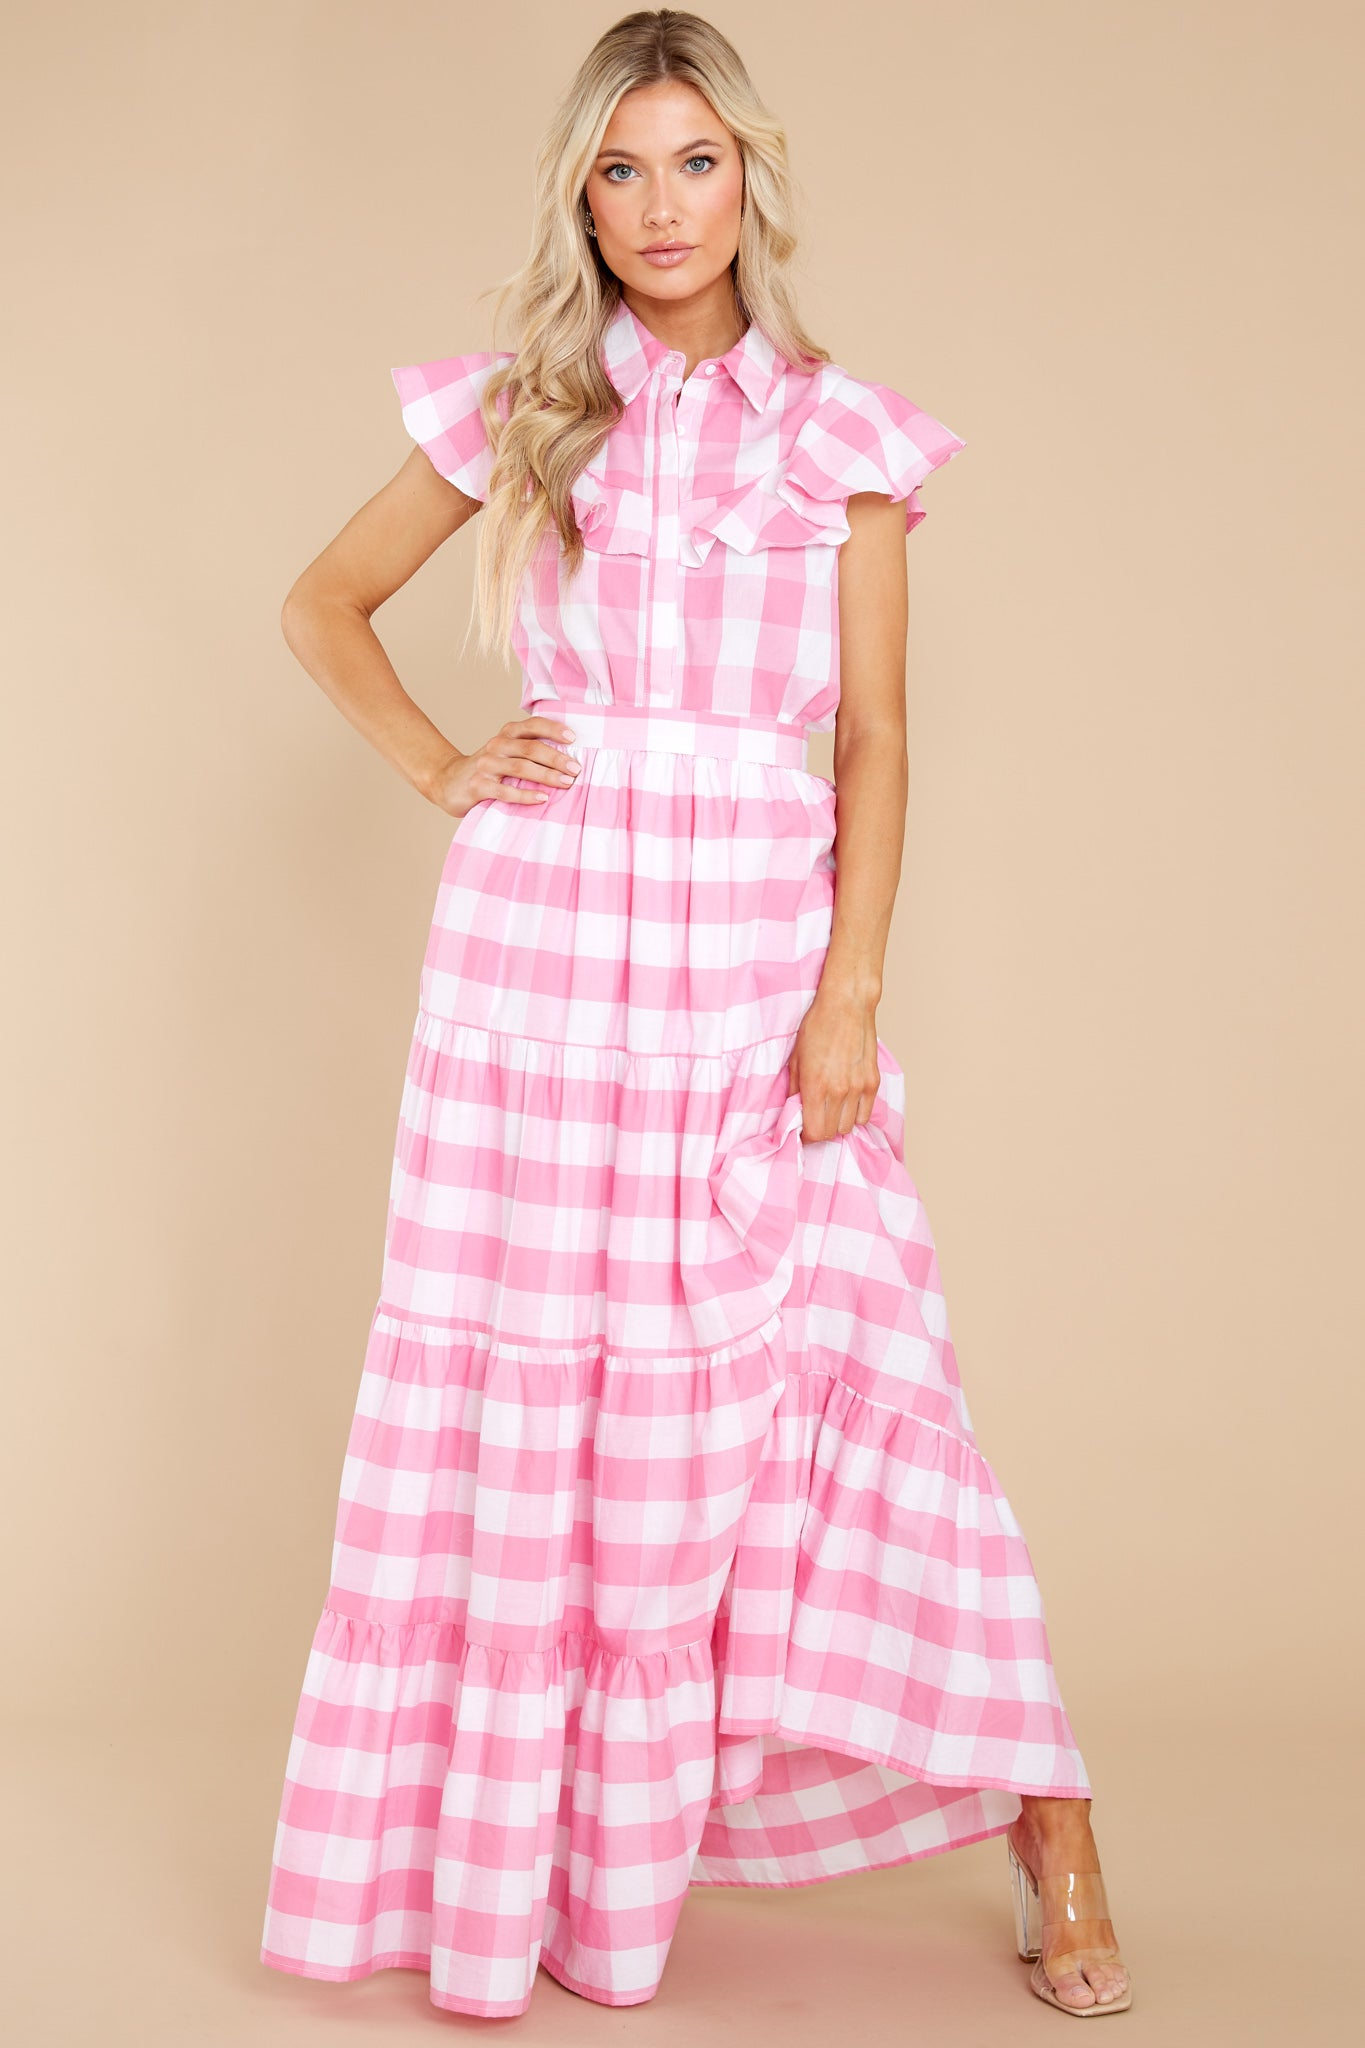 Cottagecore Dresses – Aesthetic, Granny, Vintage Aura See You Later Pink Gingham Button Up Top $38.00 AT vintagedancer.com